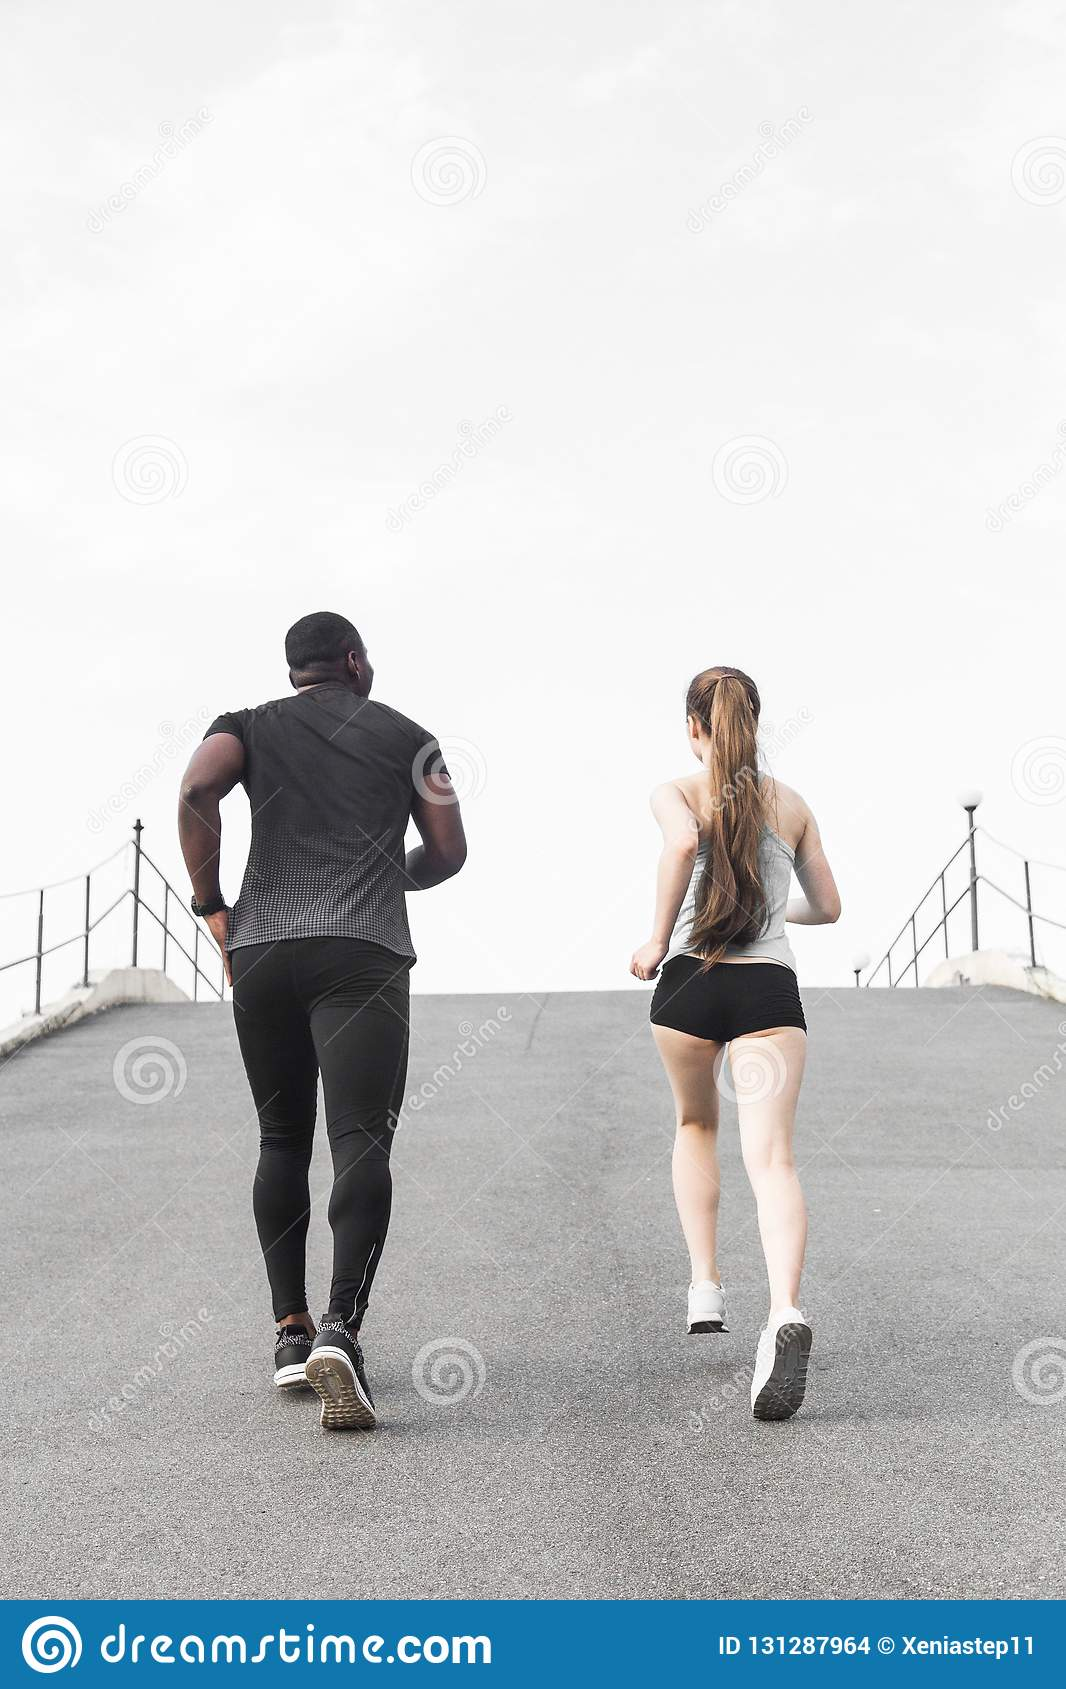 Happy young couple afro-american man and european woman running together. A loving couple is run, engaged in sports